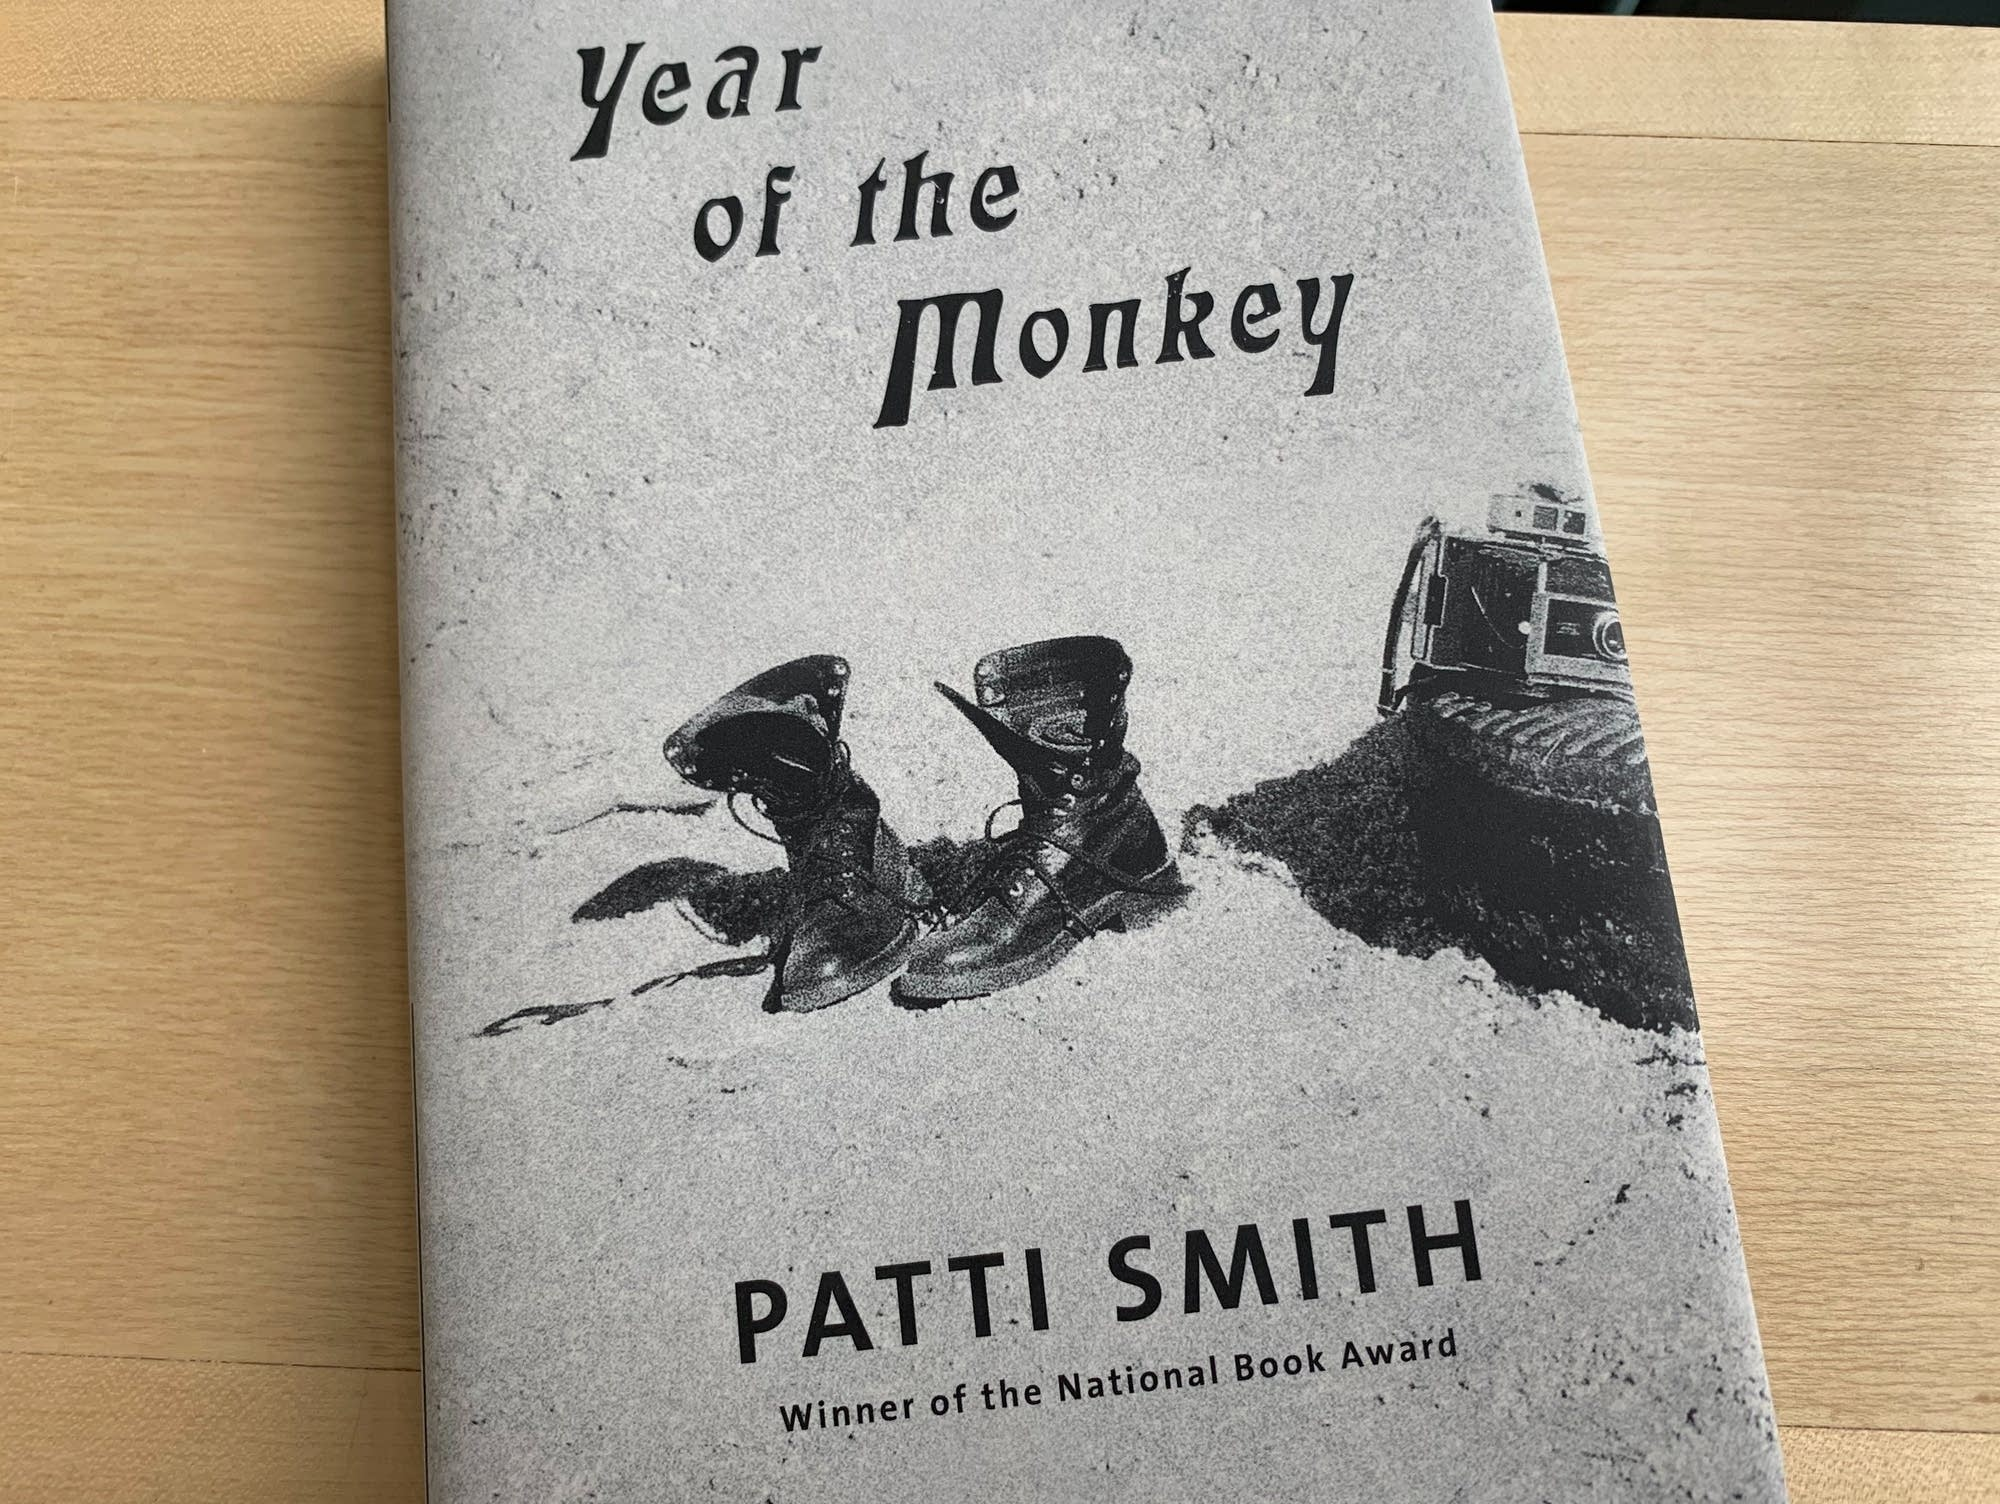 Patti Smith's 'Year of the Monkey.'